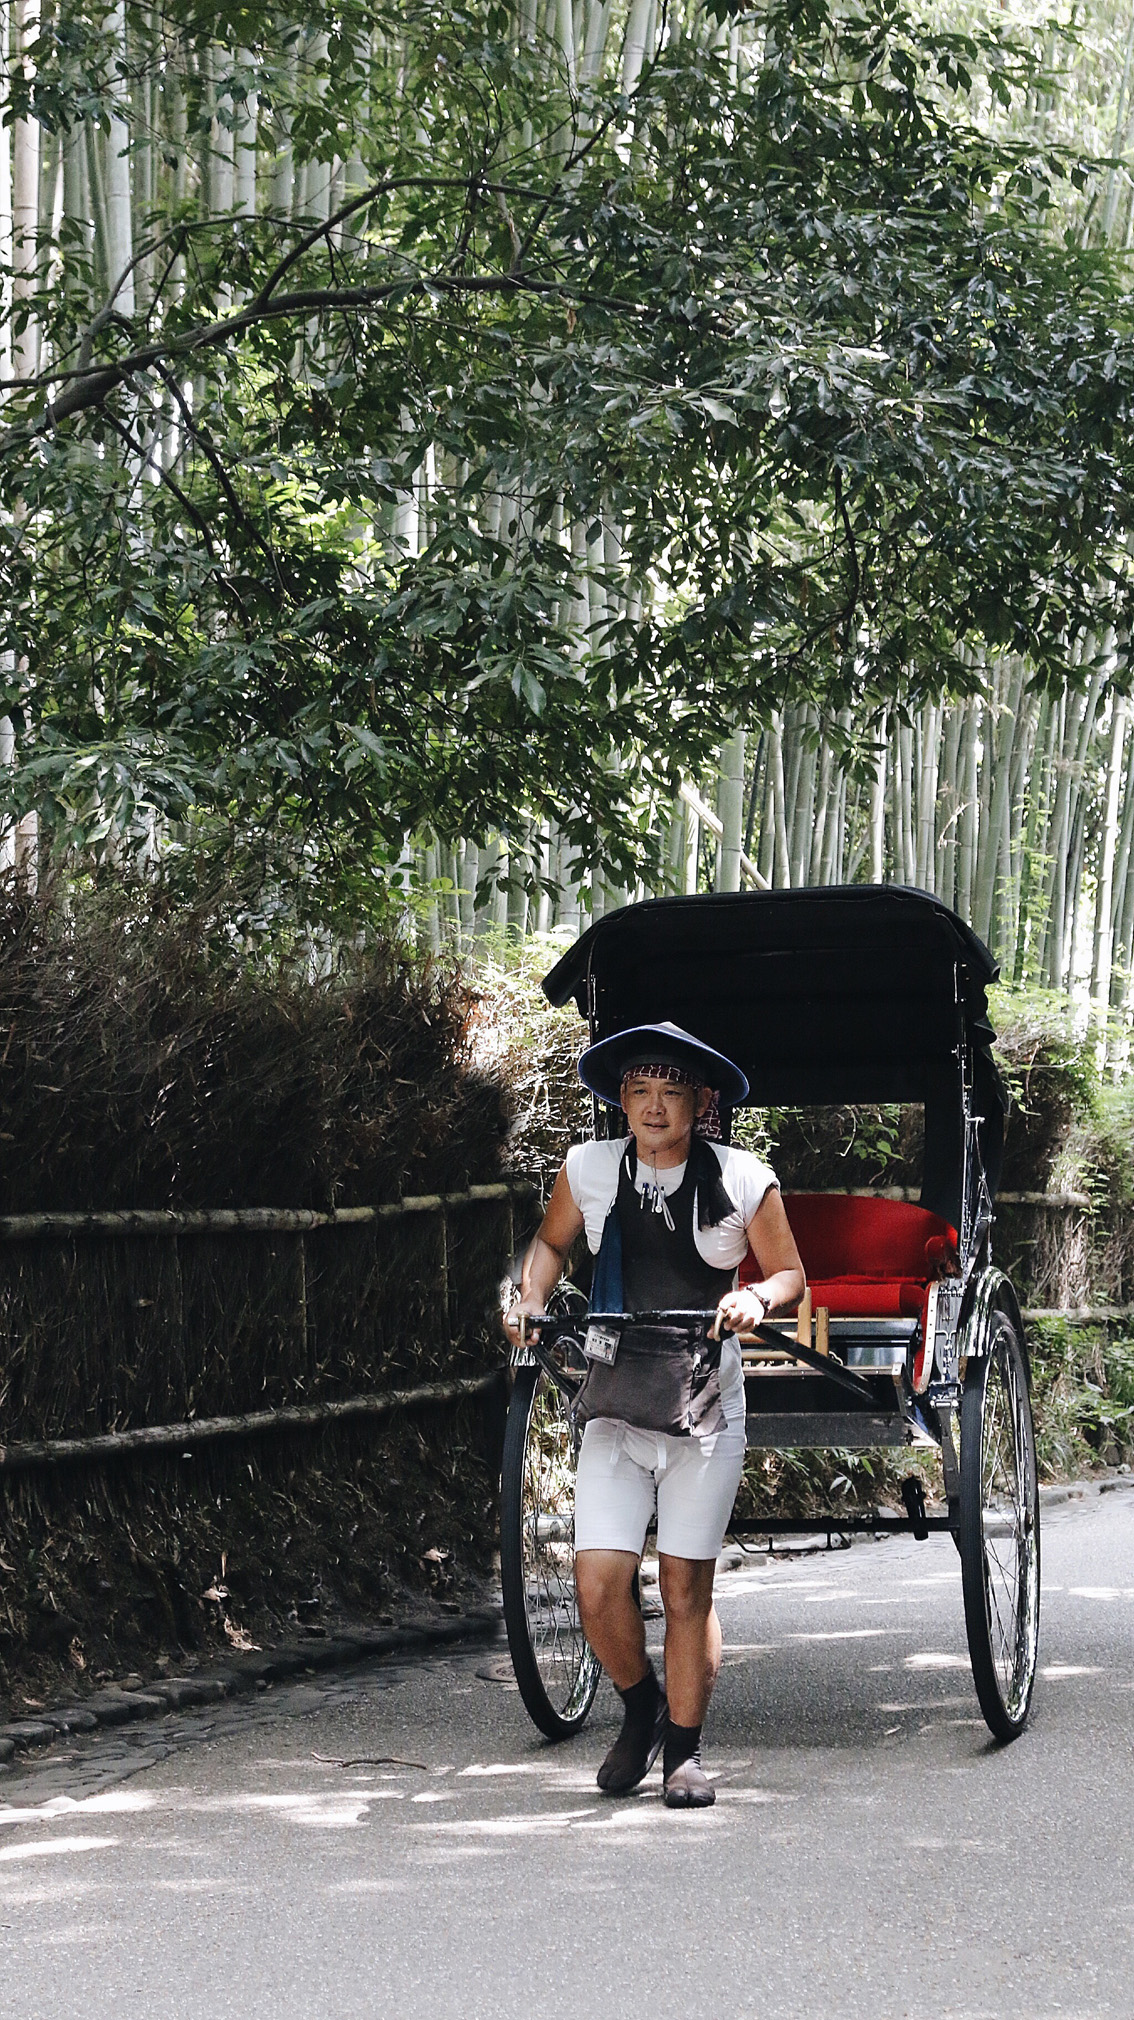 2-4 #Giappotour 4, a magical place : the Bamboo Forest in Arashiyama.